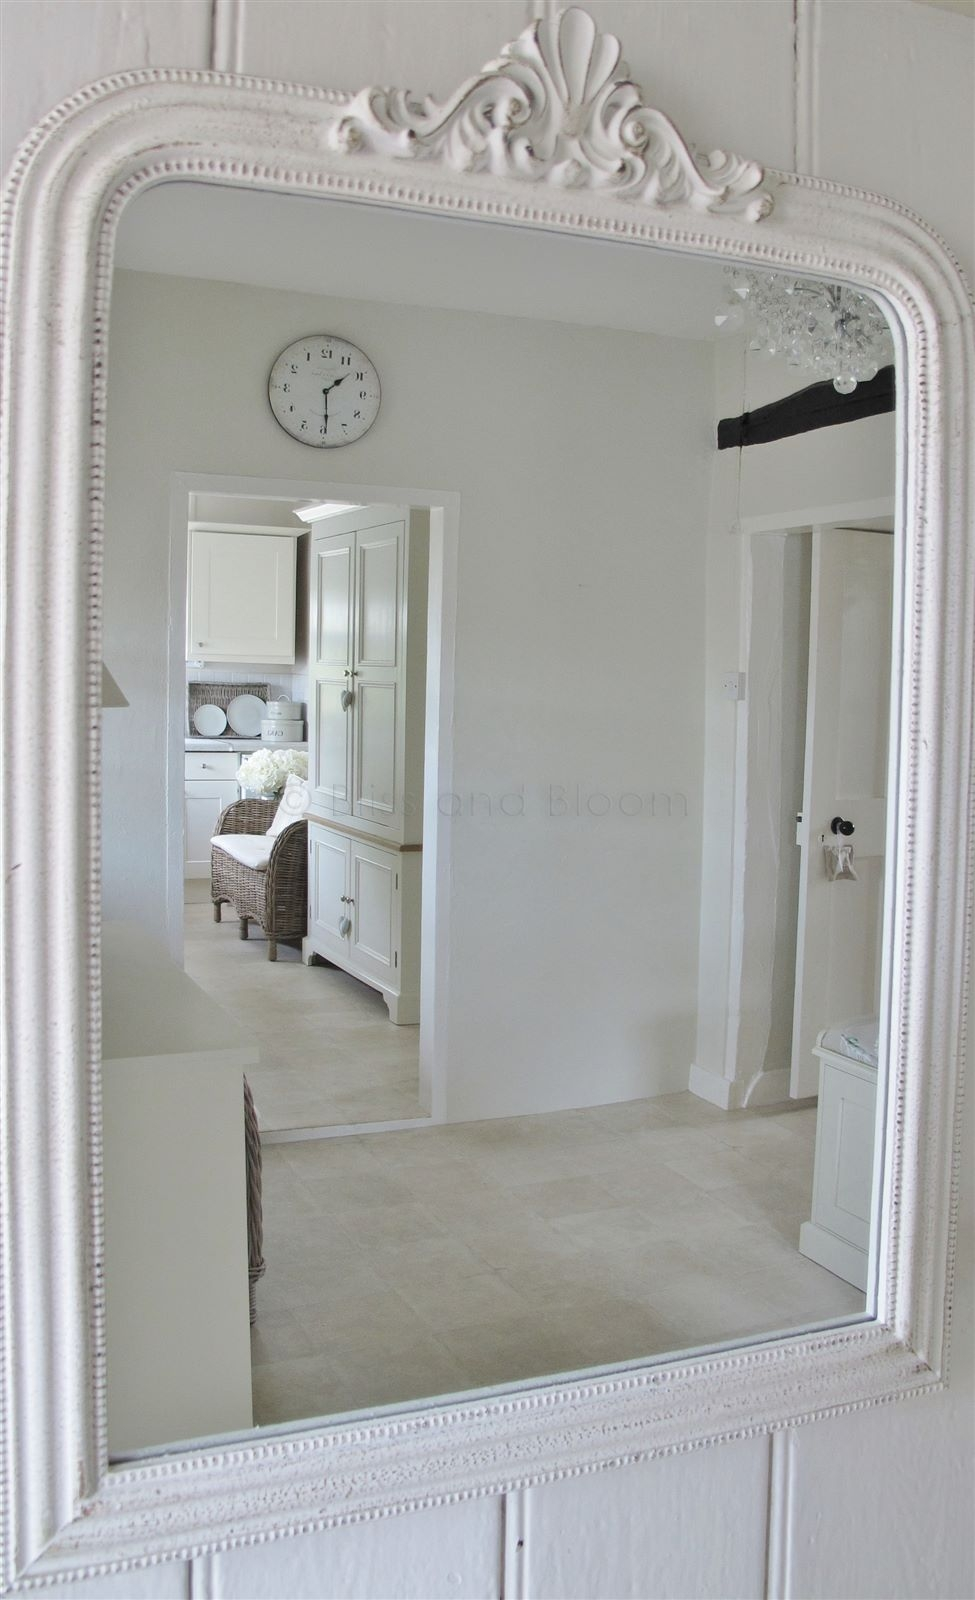 French Style White Wall Mirror Bliss And Bloom Ltd In French White Mirror (Image 3 of 15)